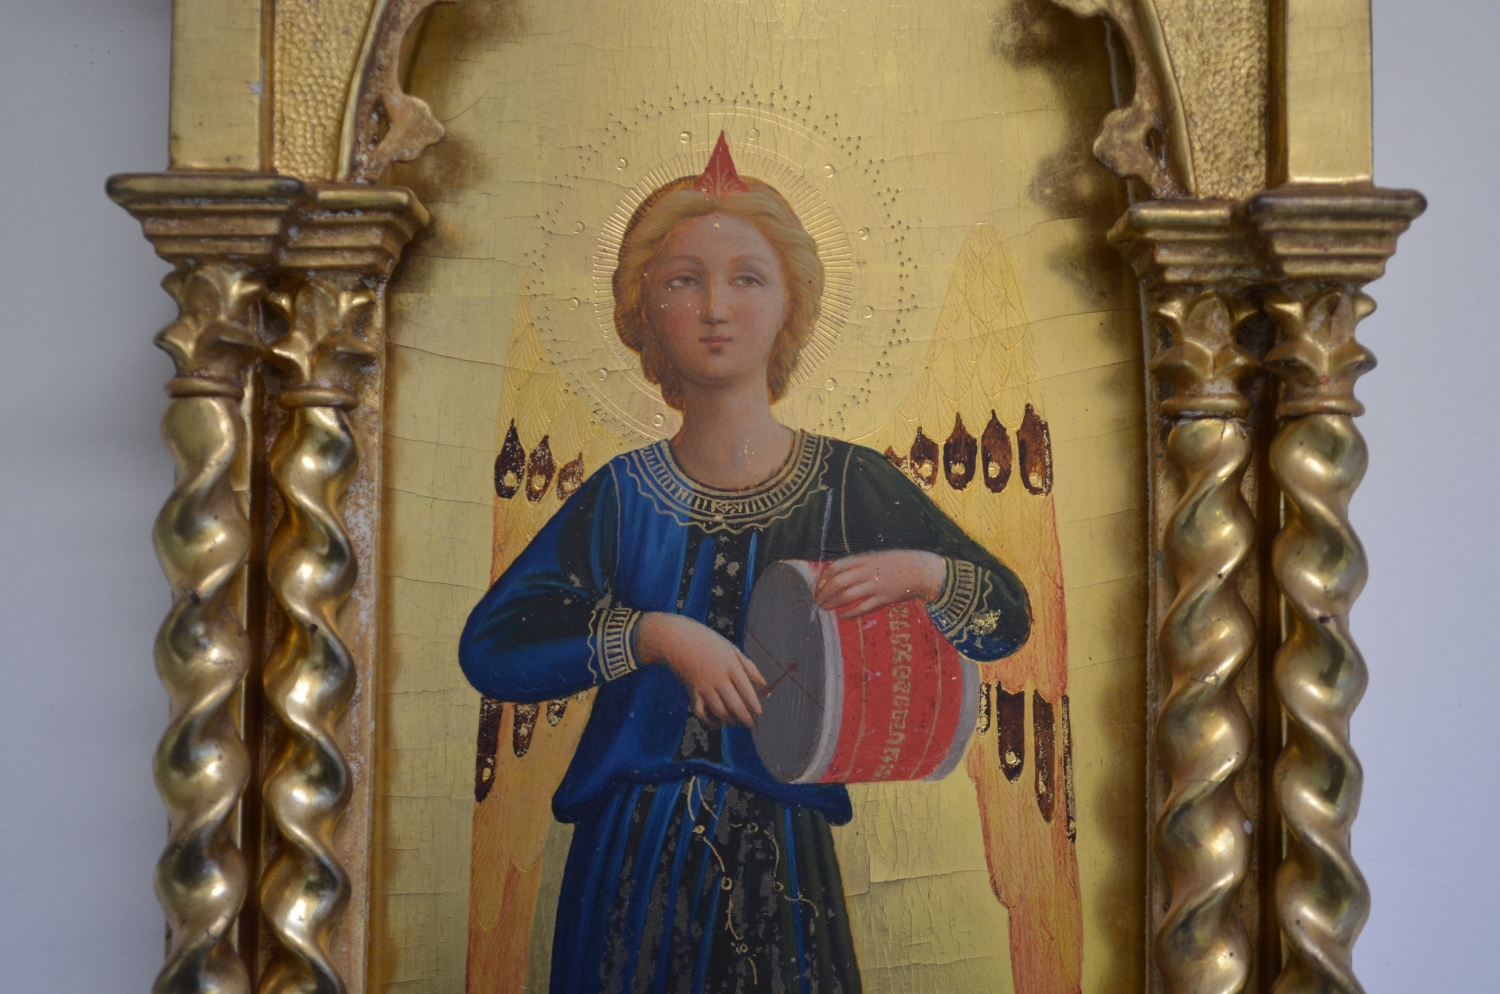 Close up of ornate gilt painting of angel's head in painting